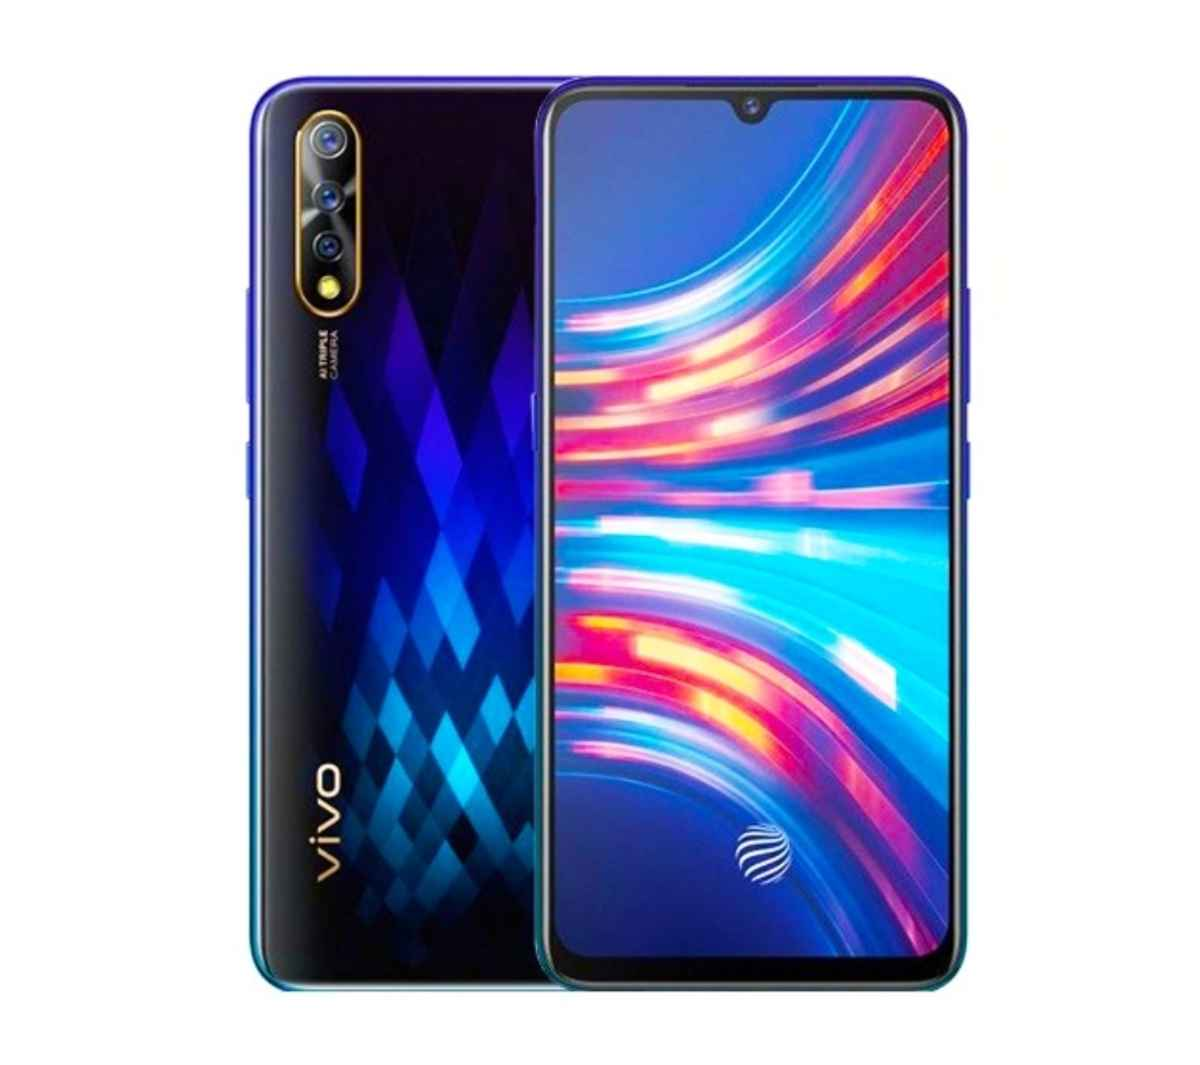 Vivo v17 neo price in Nigeria, V17 Neo, how much is the price of Vivo v17 neo in Nigeria, price of vivo v17 neo in Nigeria, vivo v17 neo specs and price in Nigeria, vivo v17 neo specs, vivo v17 neo price, vivo v17 neo full specifications, specs and price of vivo v17 neo, Vivo v17 neo and price in Nigeria, Vivo v17 neo in Nigeria, vivo v17 neo in Nigeria price